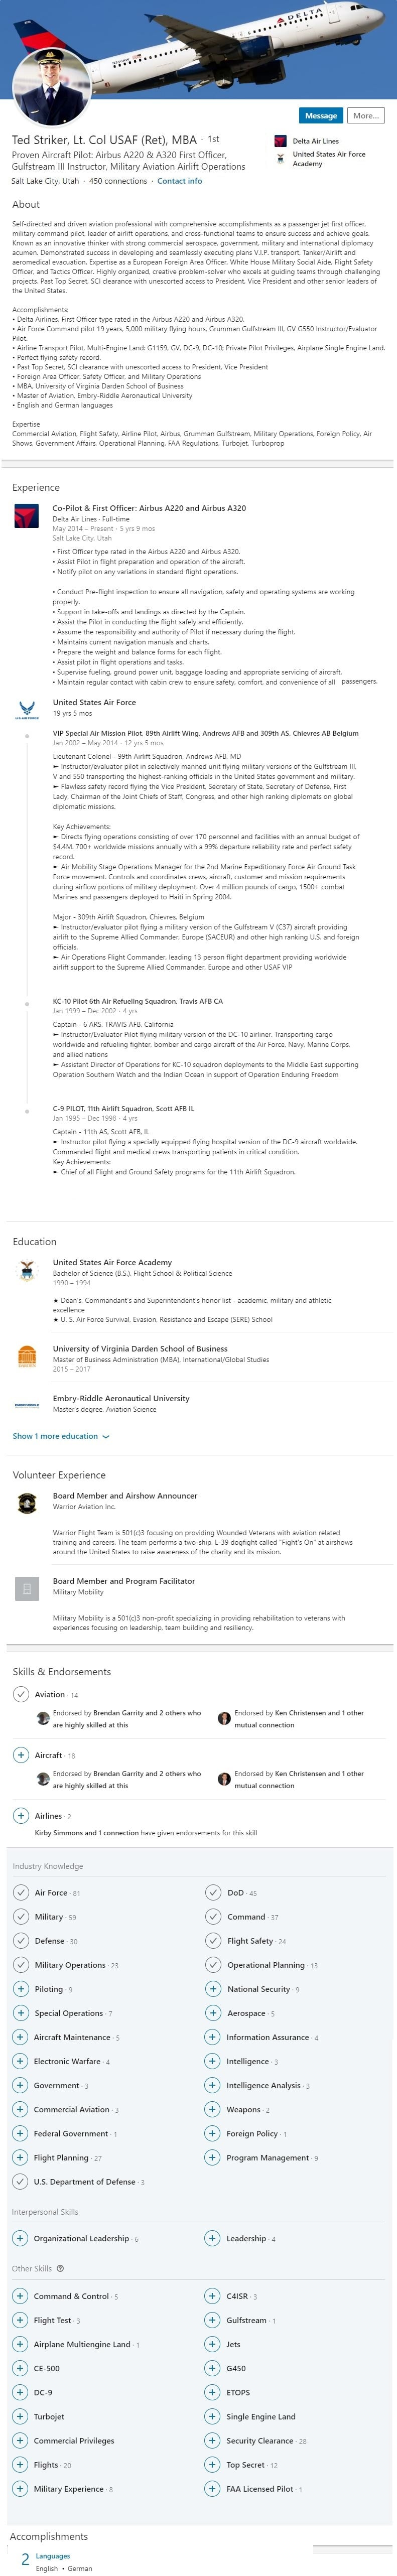 linkedin profile example military aviation airline pilot 1544